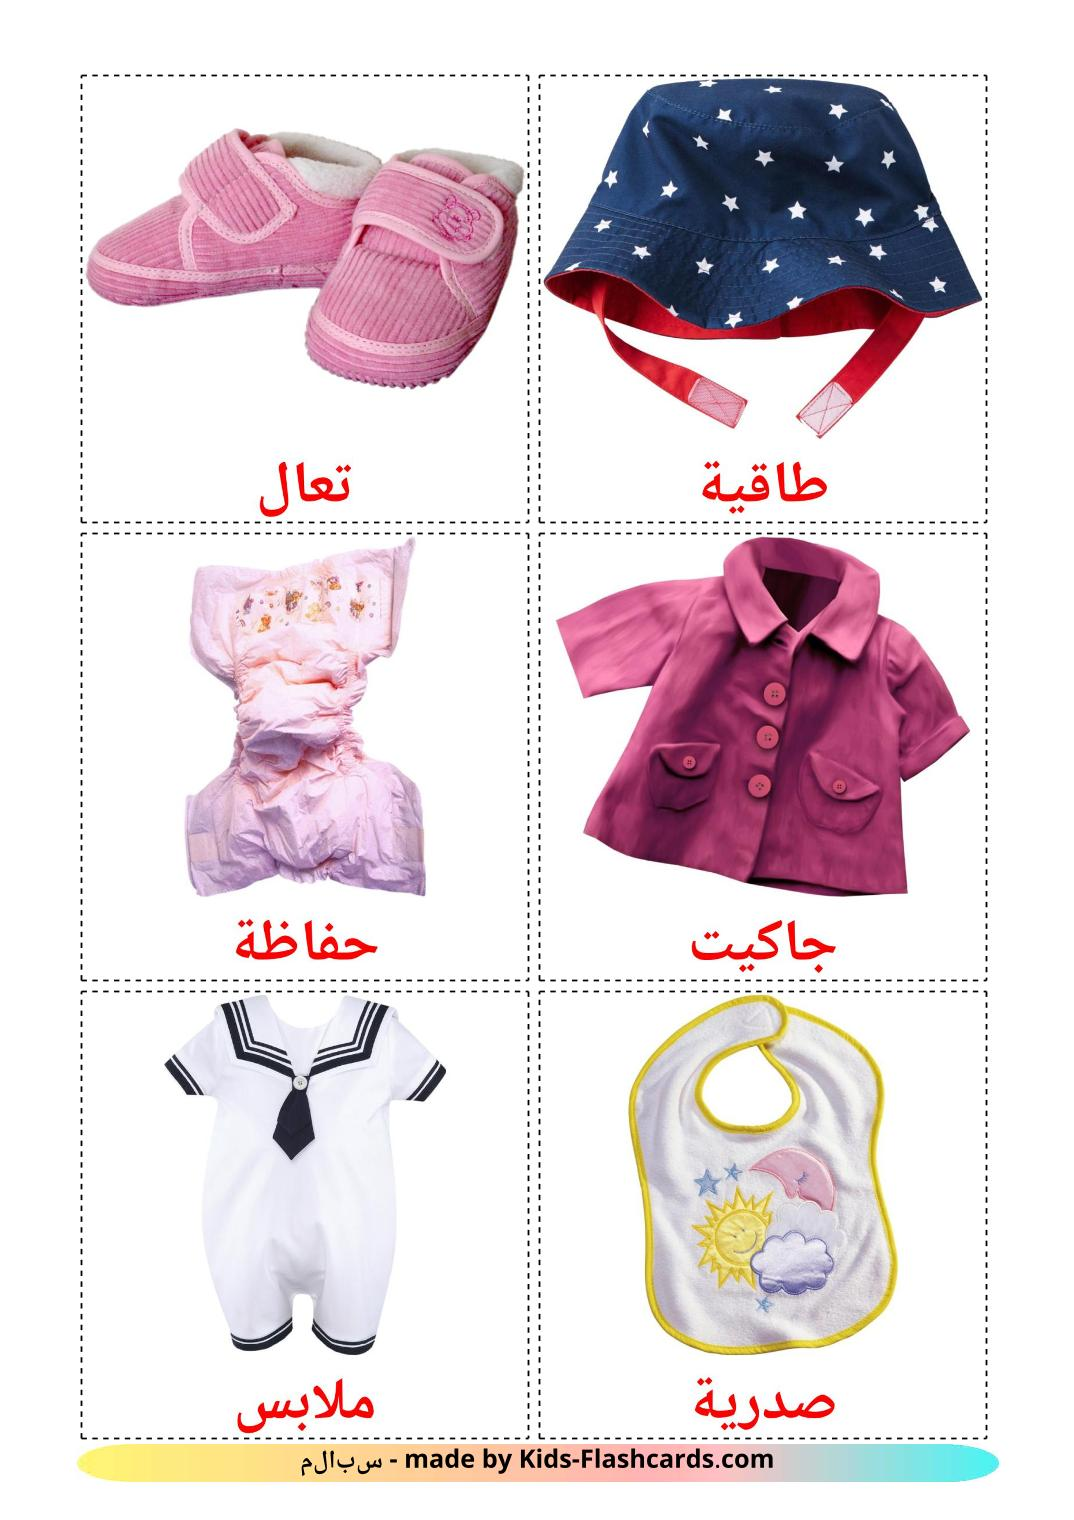 Baby clothes - 12 Free Printable arabic Flashcards